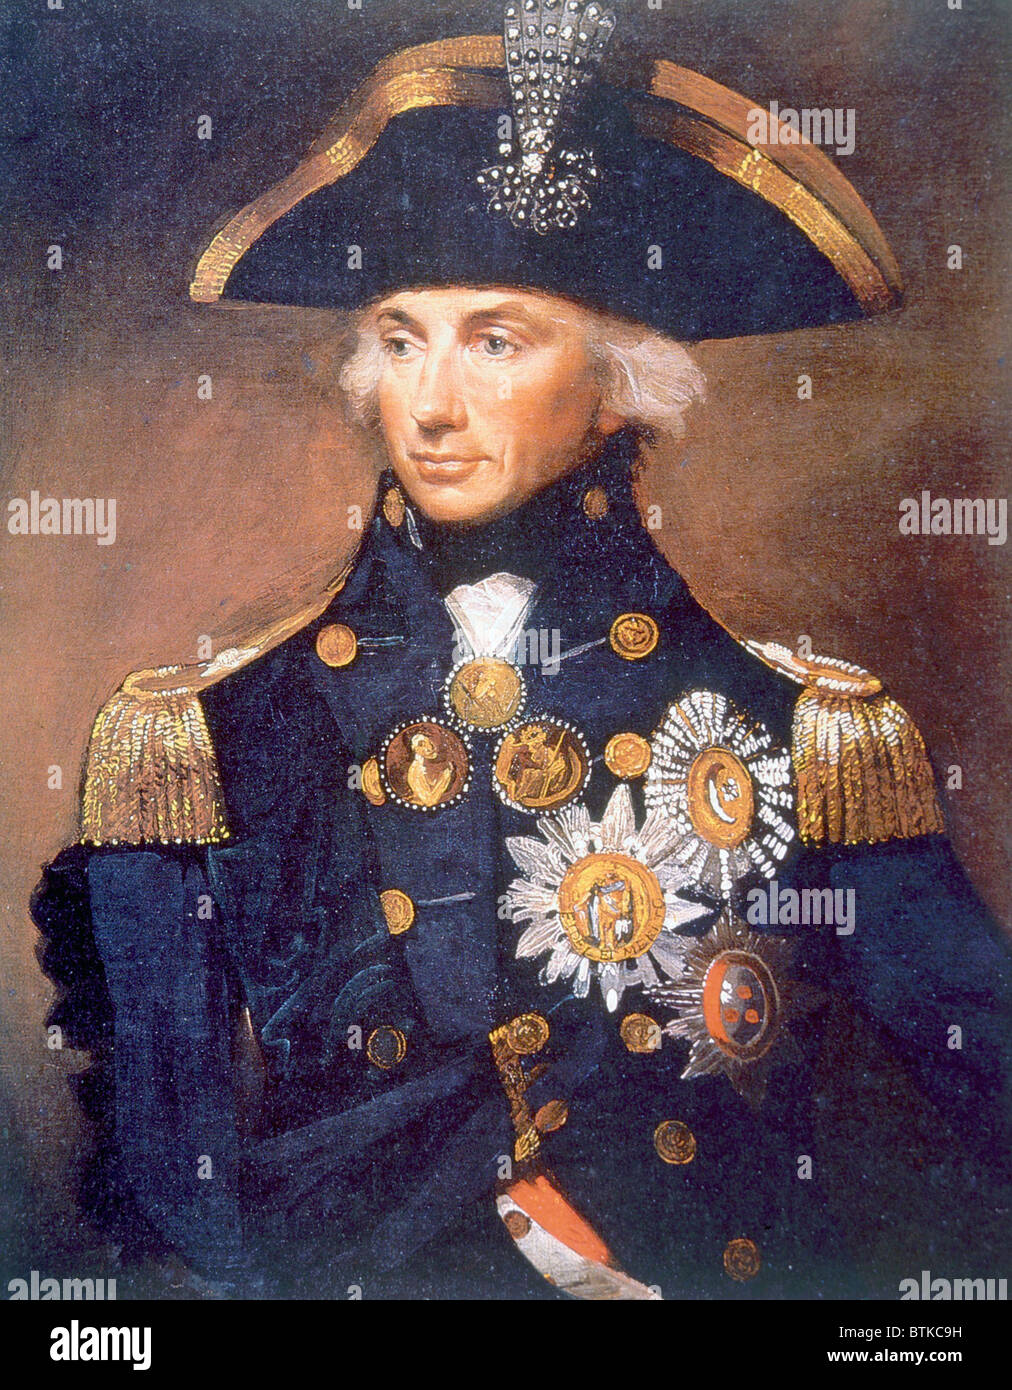 Admiral Horatio Nelson 1758 1805 Portrait From The National Maritime Museum In London By Lemuel Abbott 1798